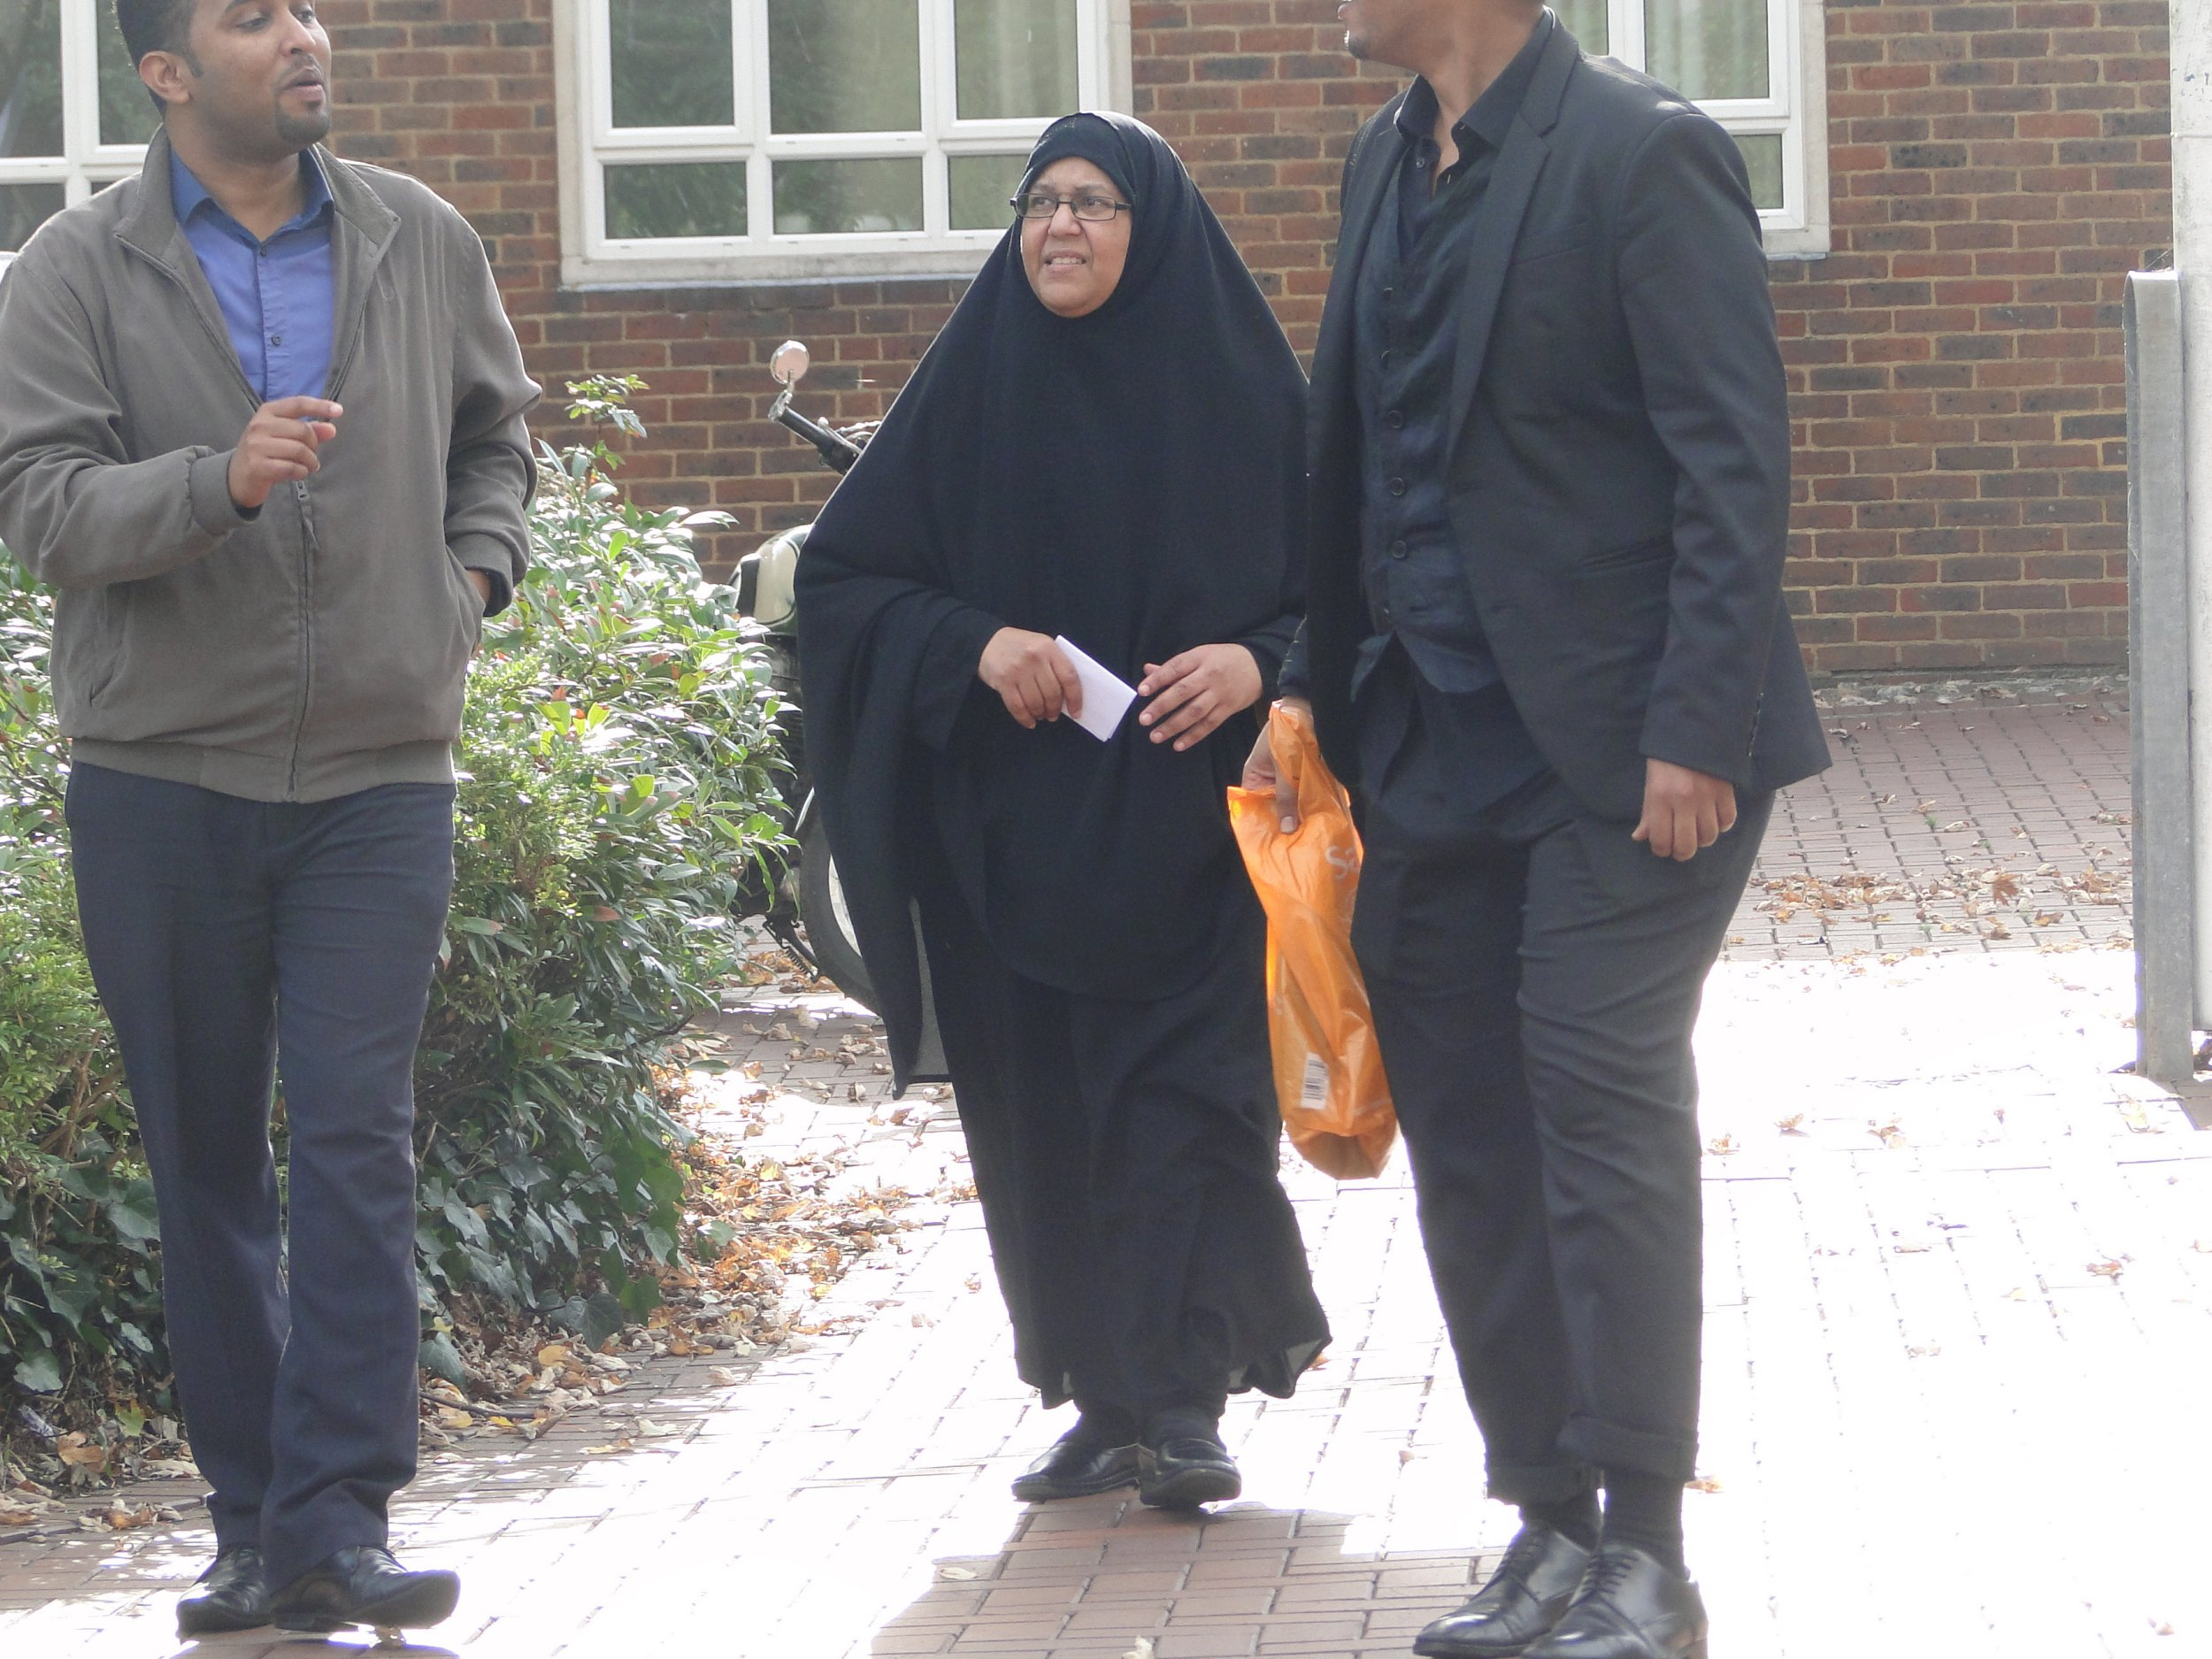 Hana Abdi Qahtan - at court / A refugee who abused her and her family's new British passports to bring in two illegal migrants has been praised for her 'humanitarian desire' by a judge. Somalia-born Hana Abdi Qahtan, 46, tried to pass off a 16-year-old Yemeni as her son at London Heathrow Airport and had another UK passport for an older woman hidden in her hijab.